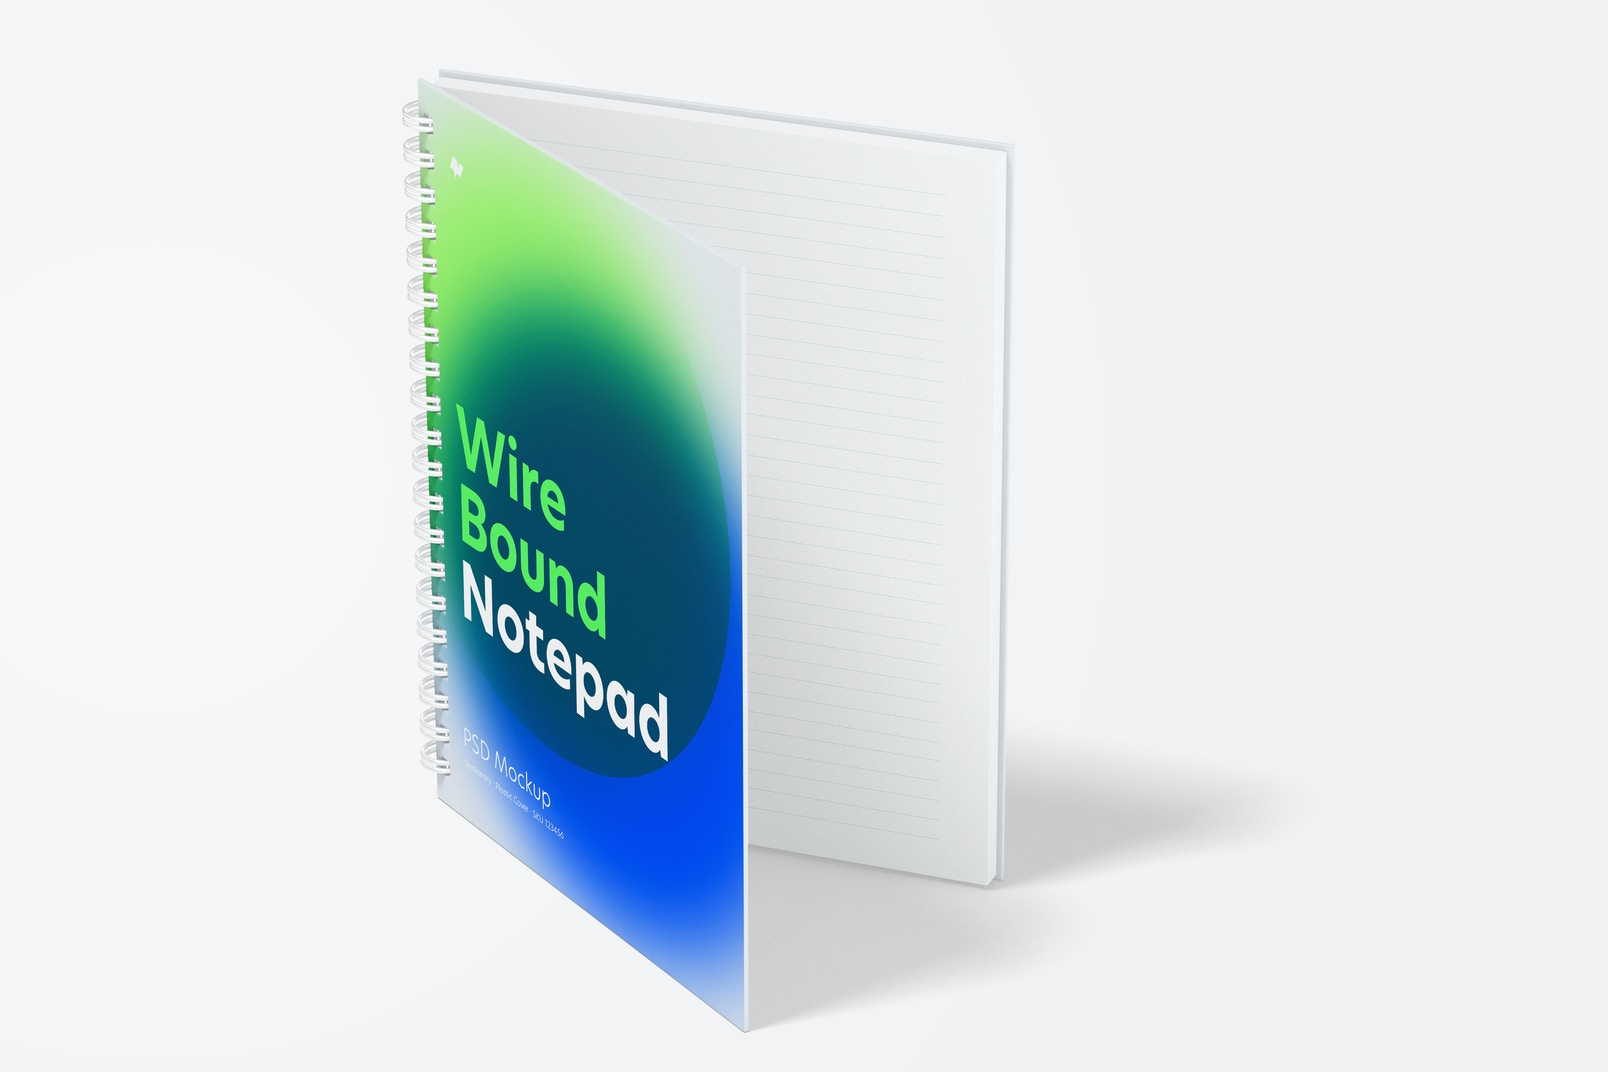 Plastic Cover Wire Bound Notepad Mockup